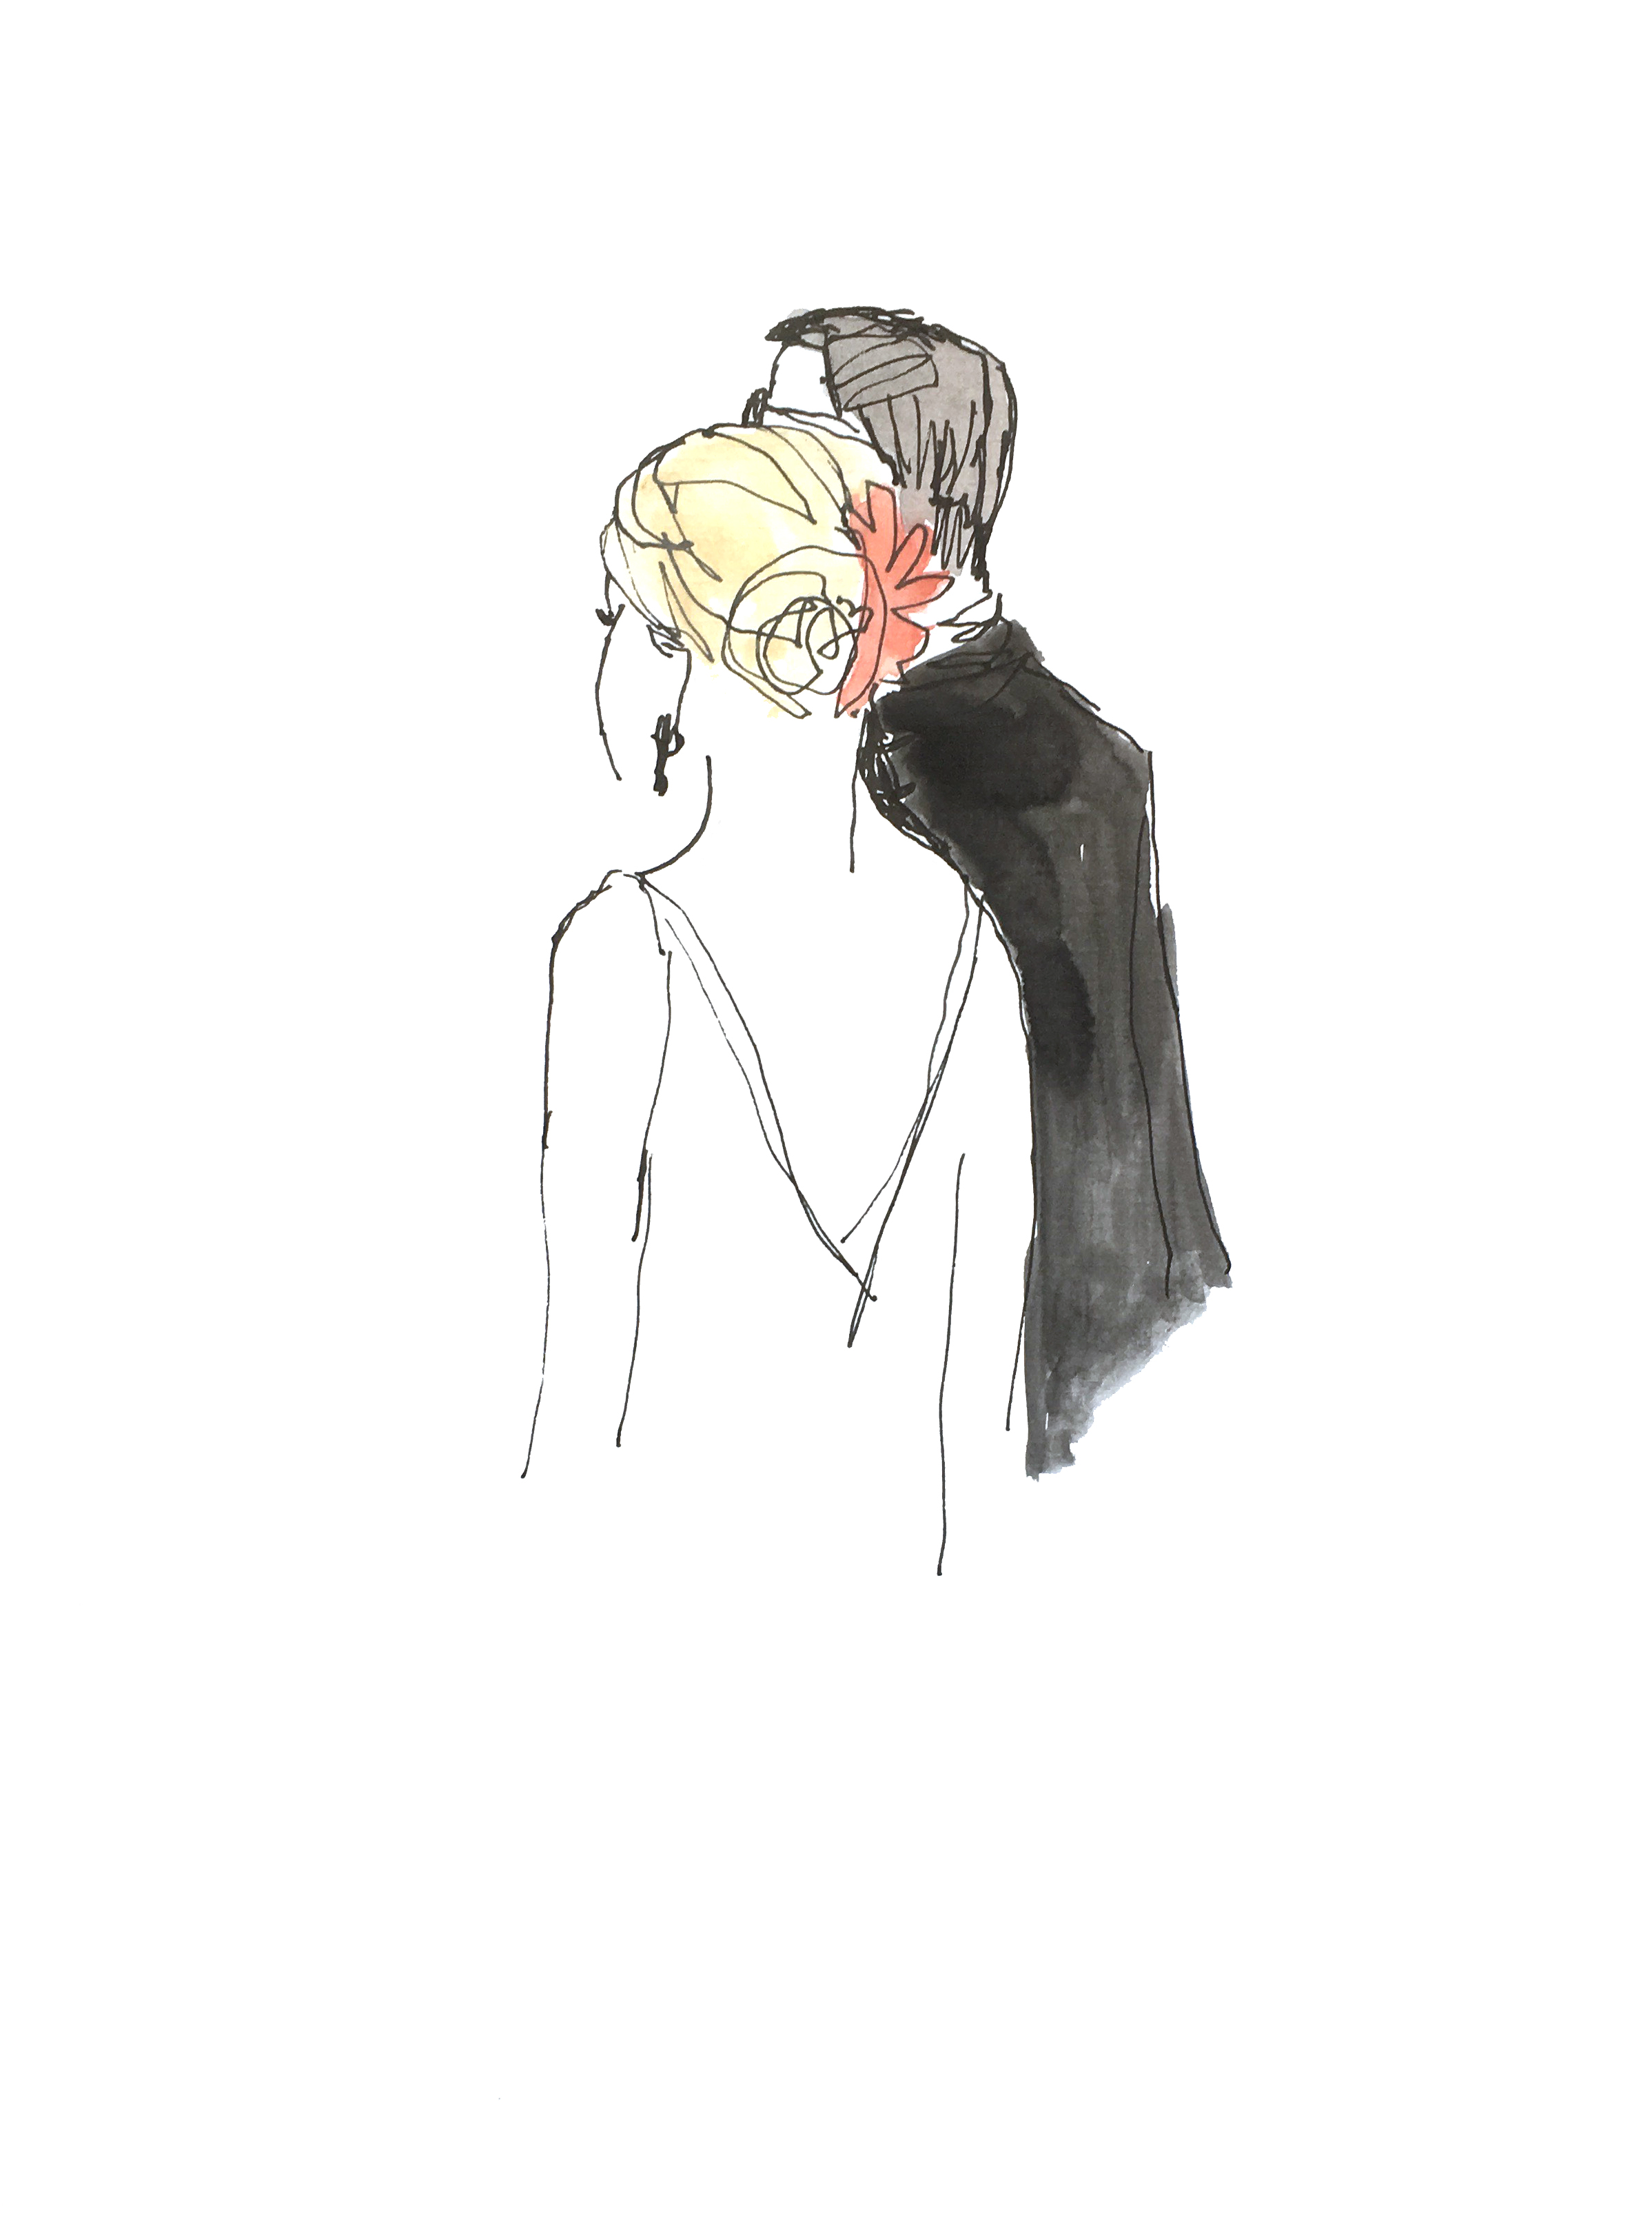 House of Love Illustration Live Wedding Artist Illustrator 00004.jpg